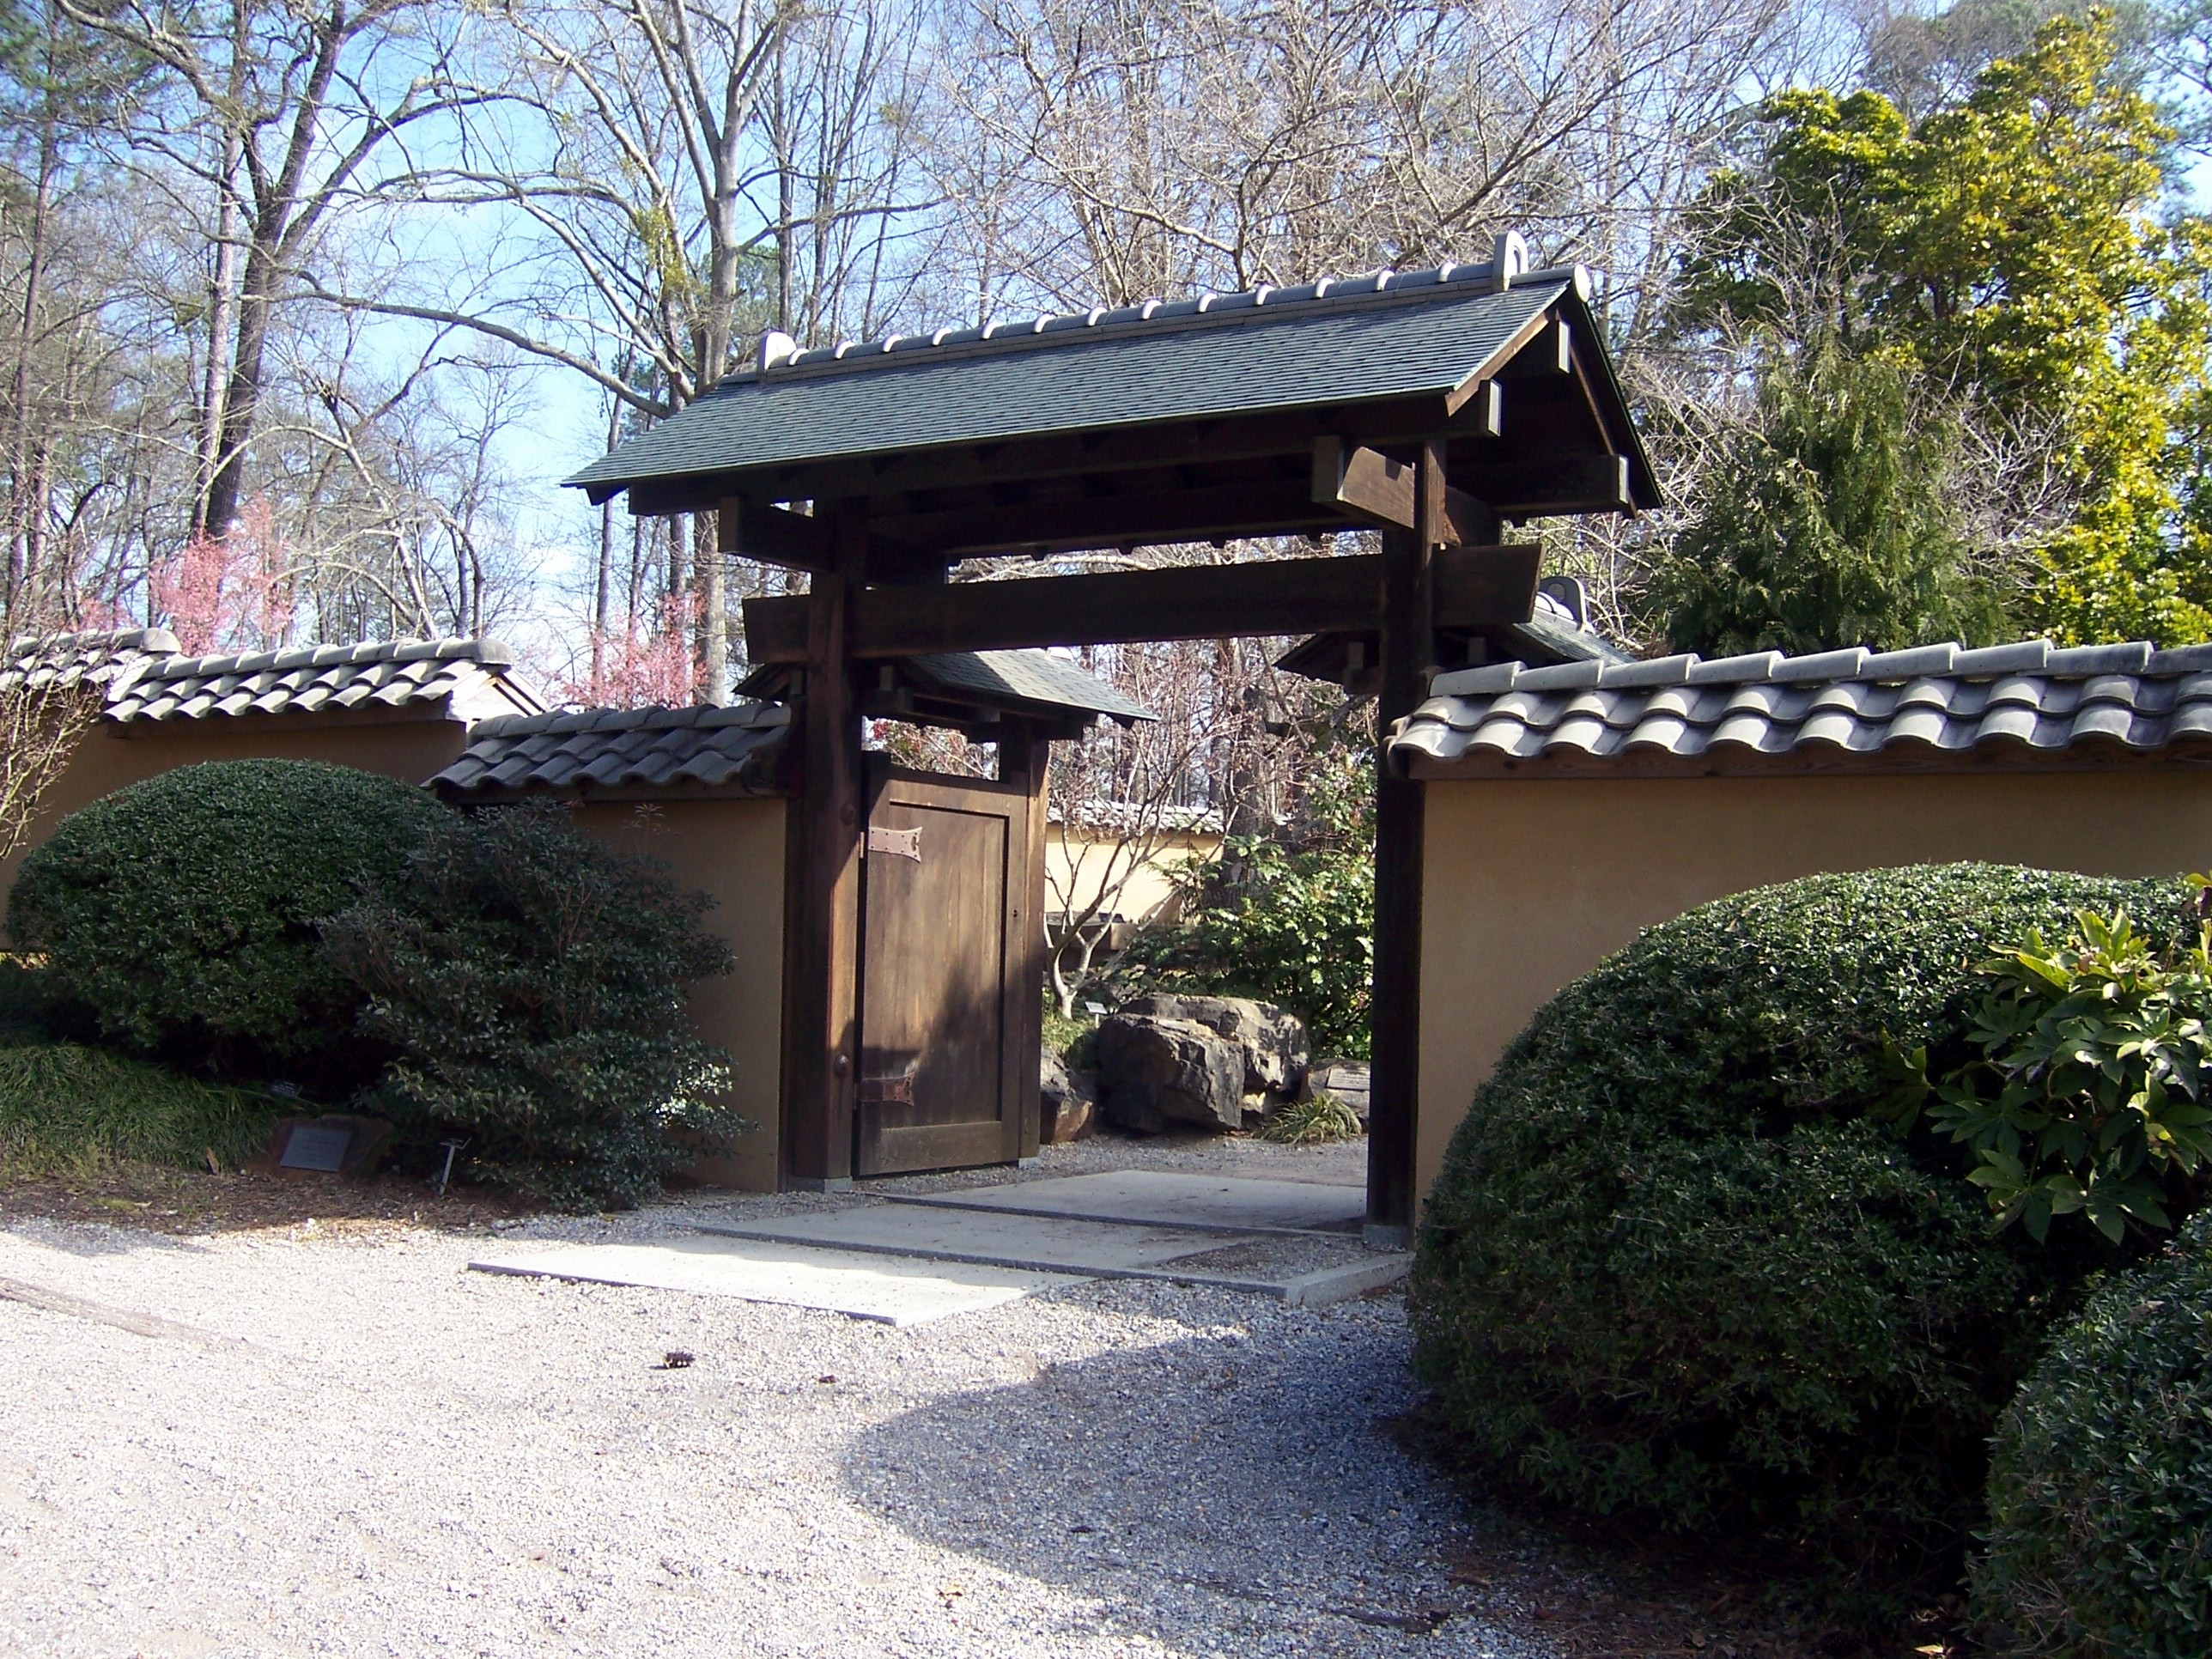 Description birmingham botanical gardens japanese garden taylor gate